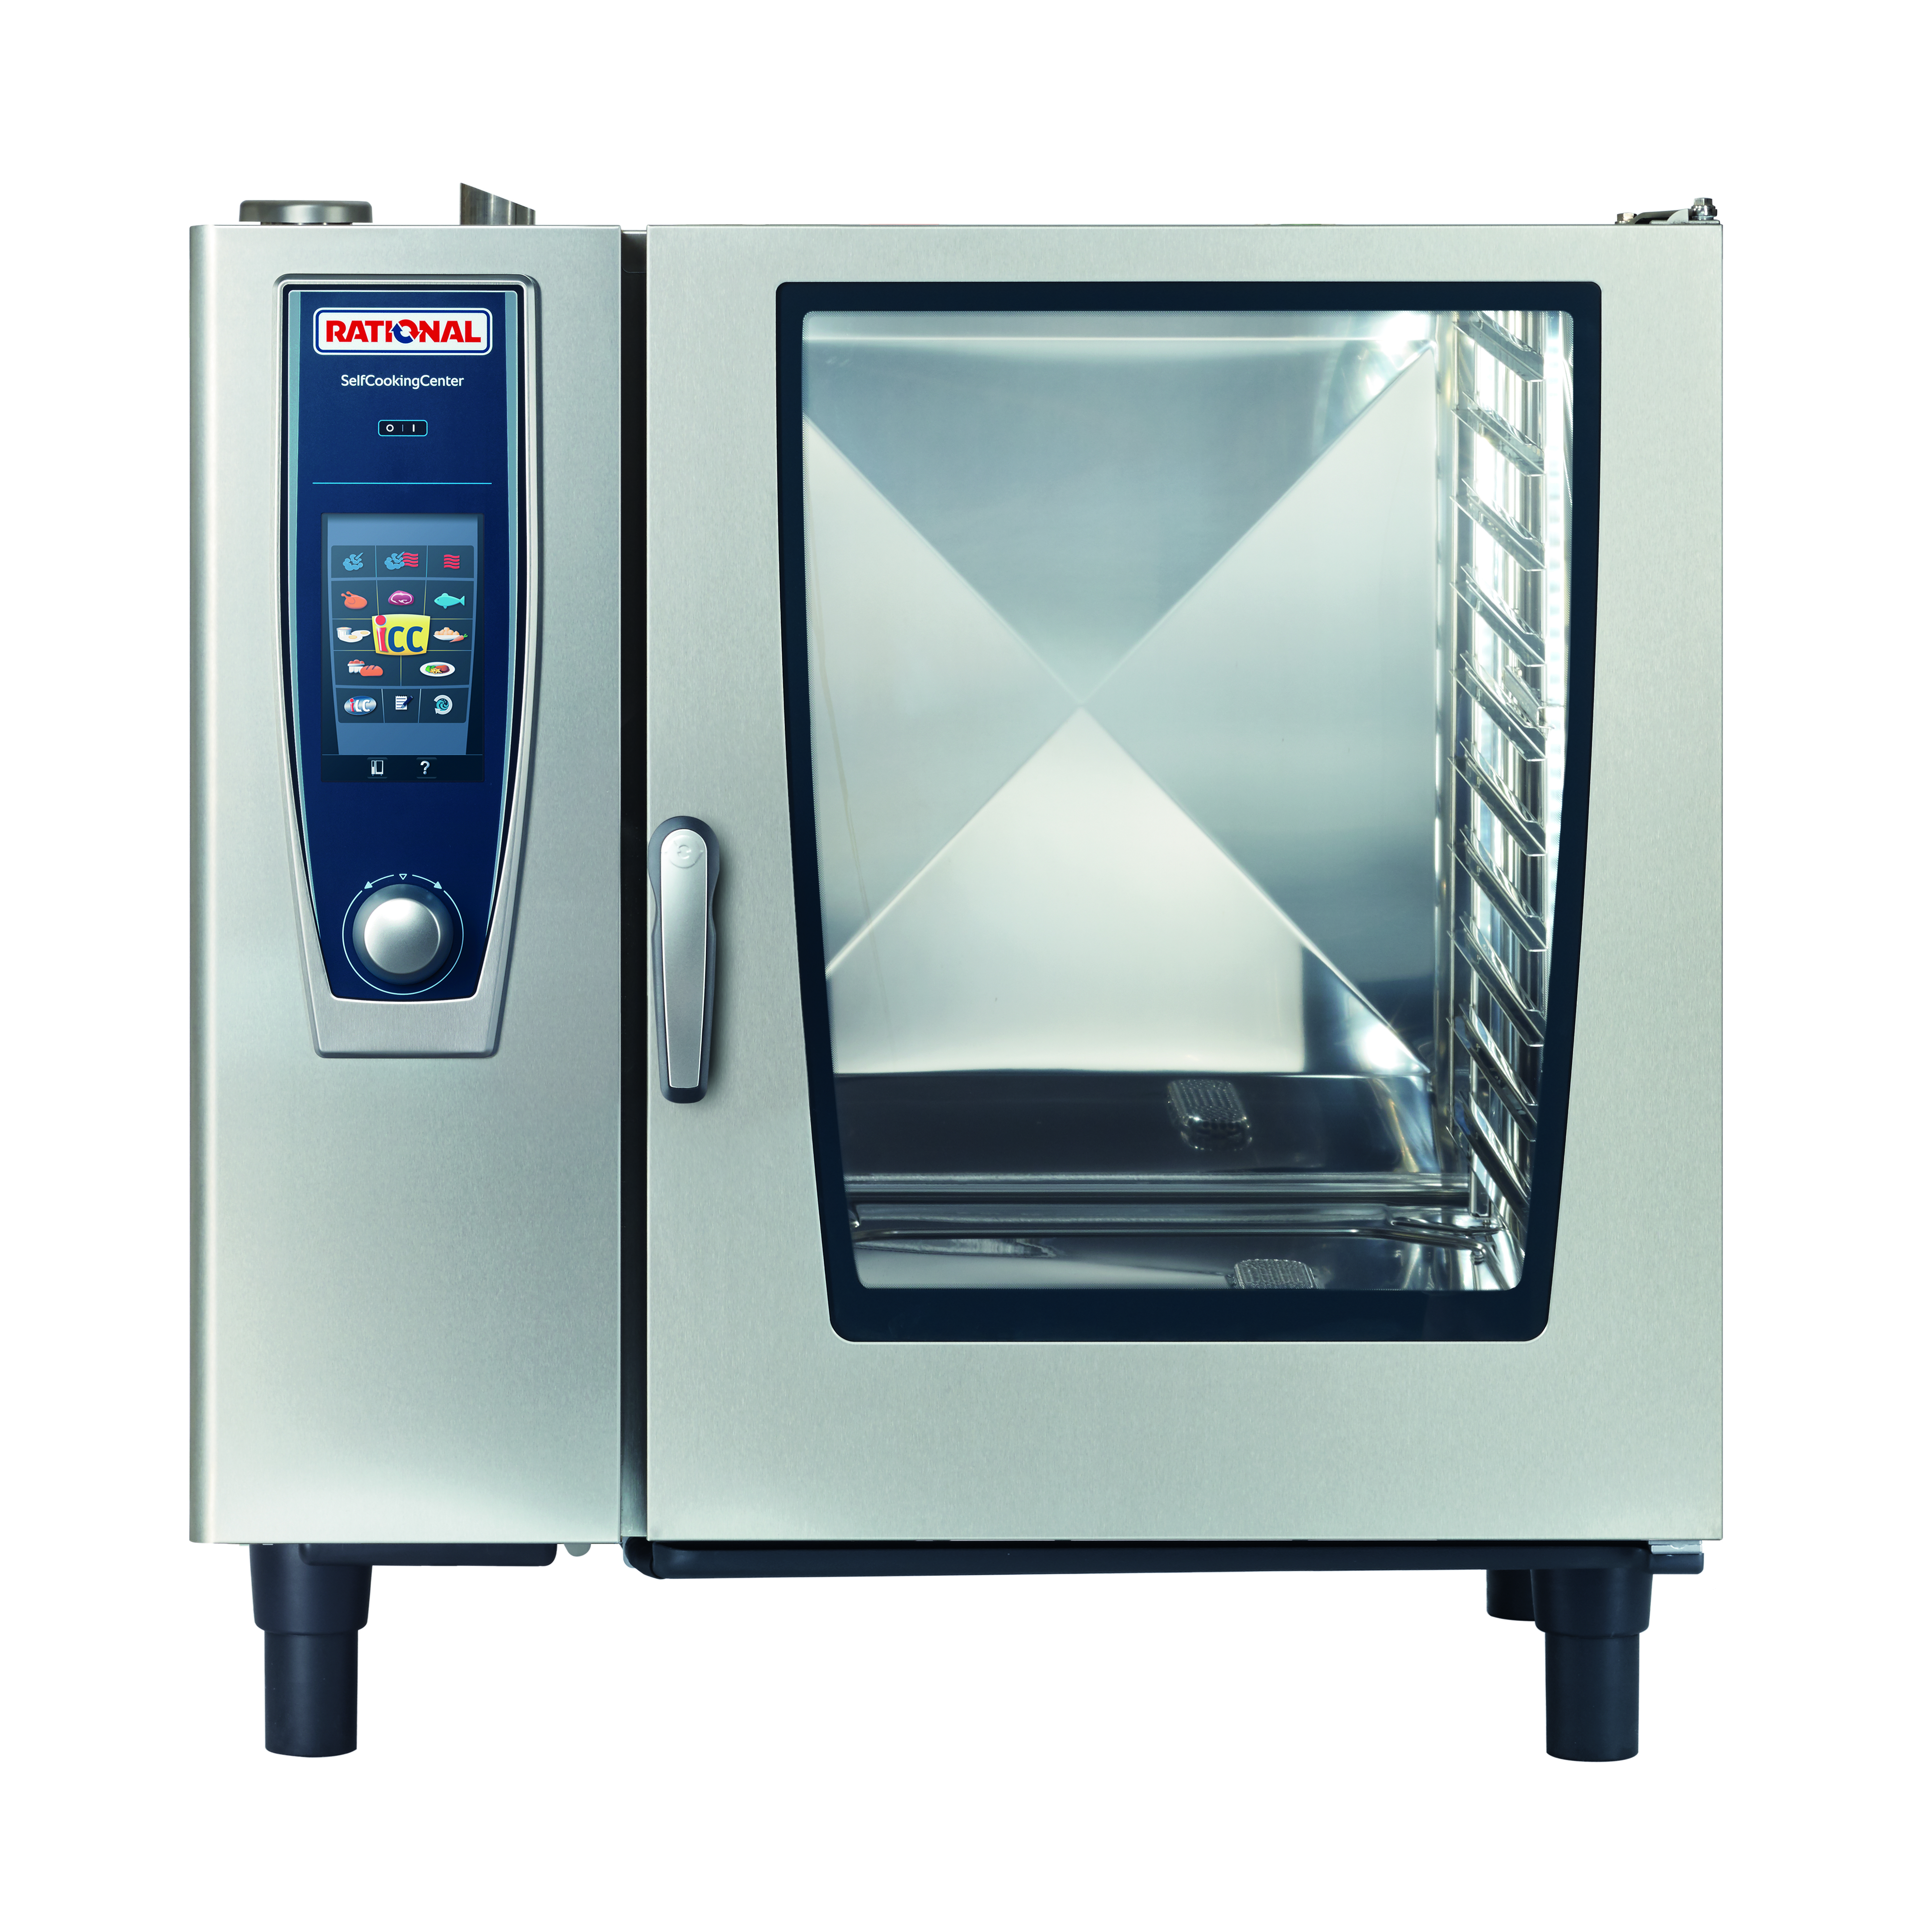 RATIONAL B128206.19D combi oven, gas